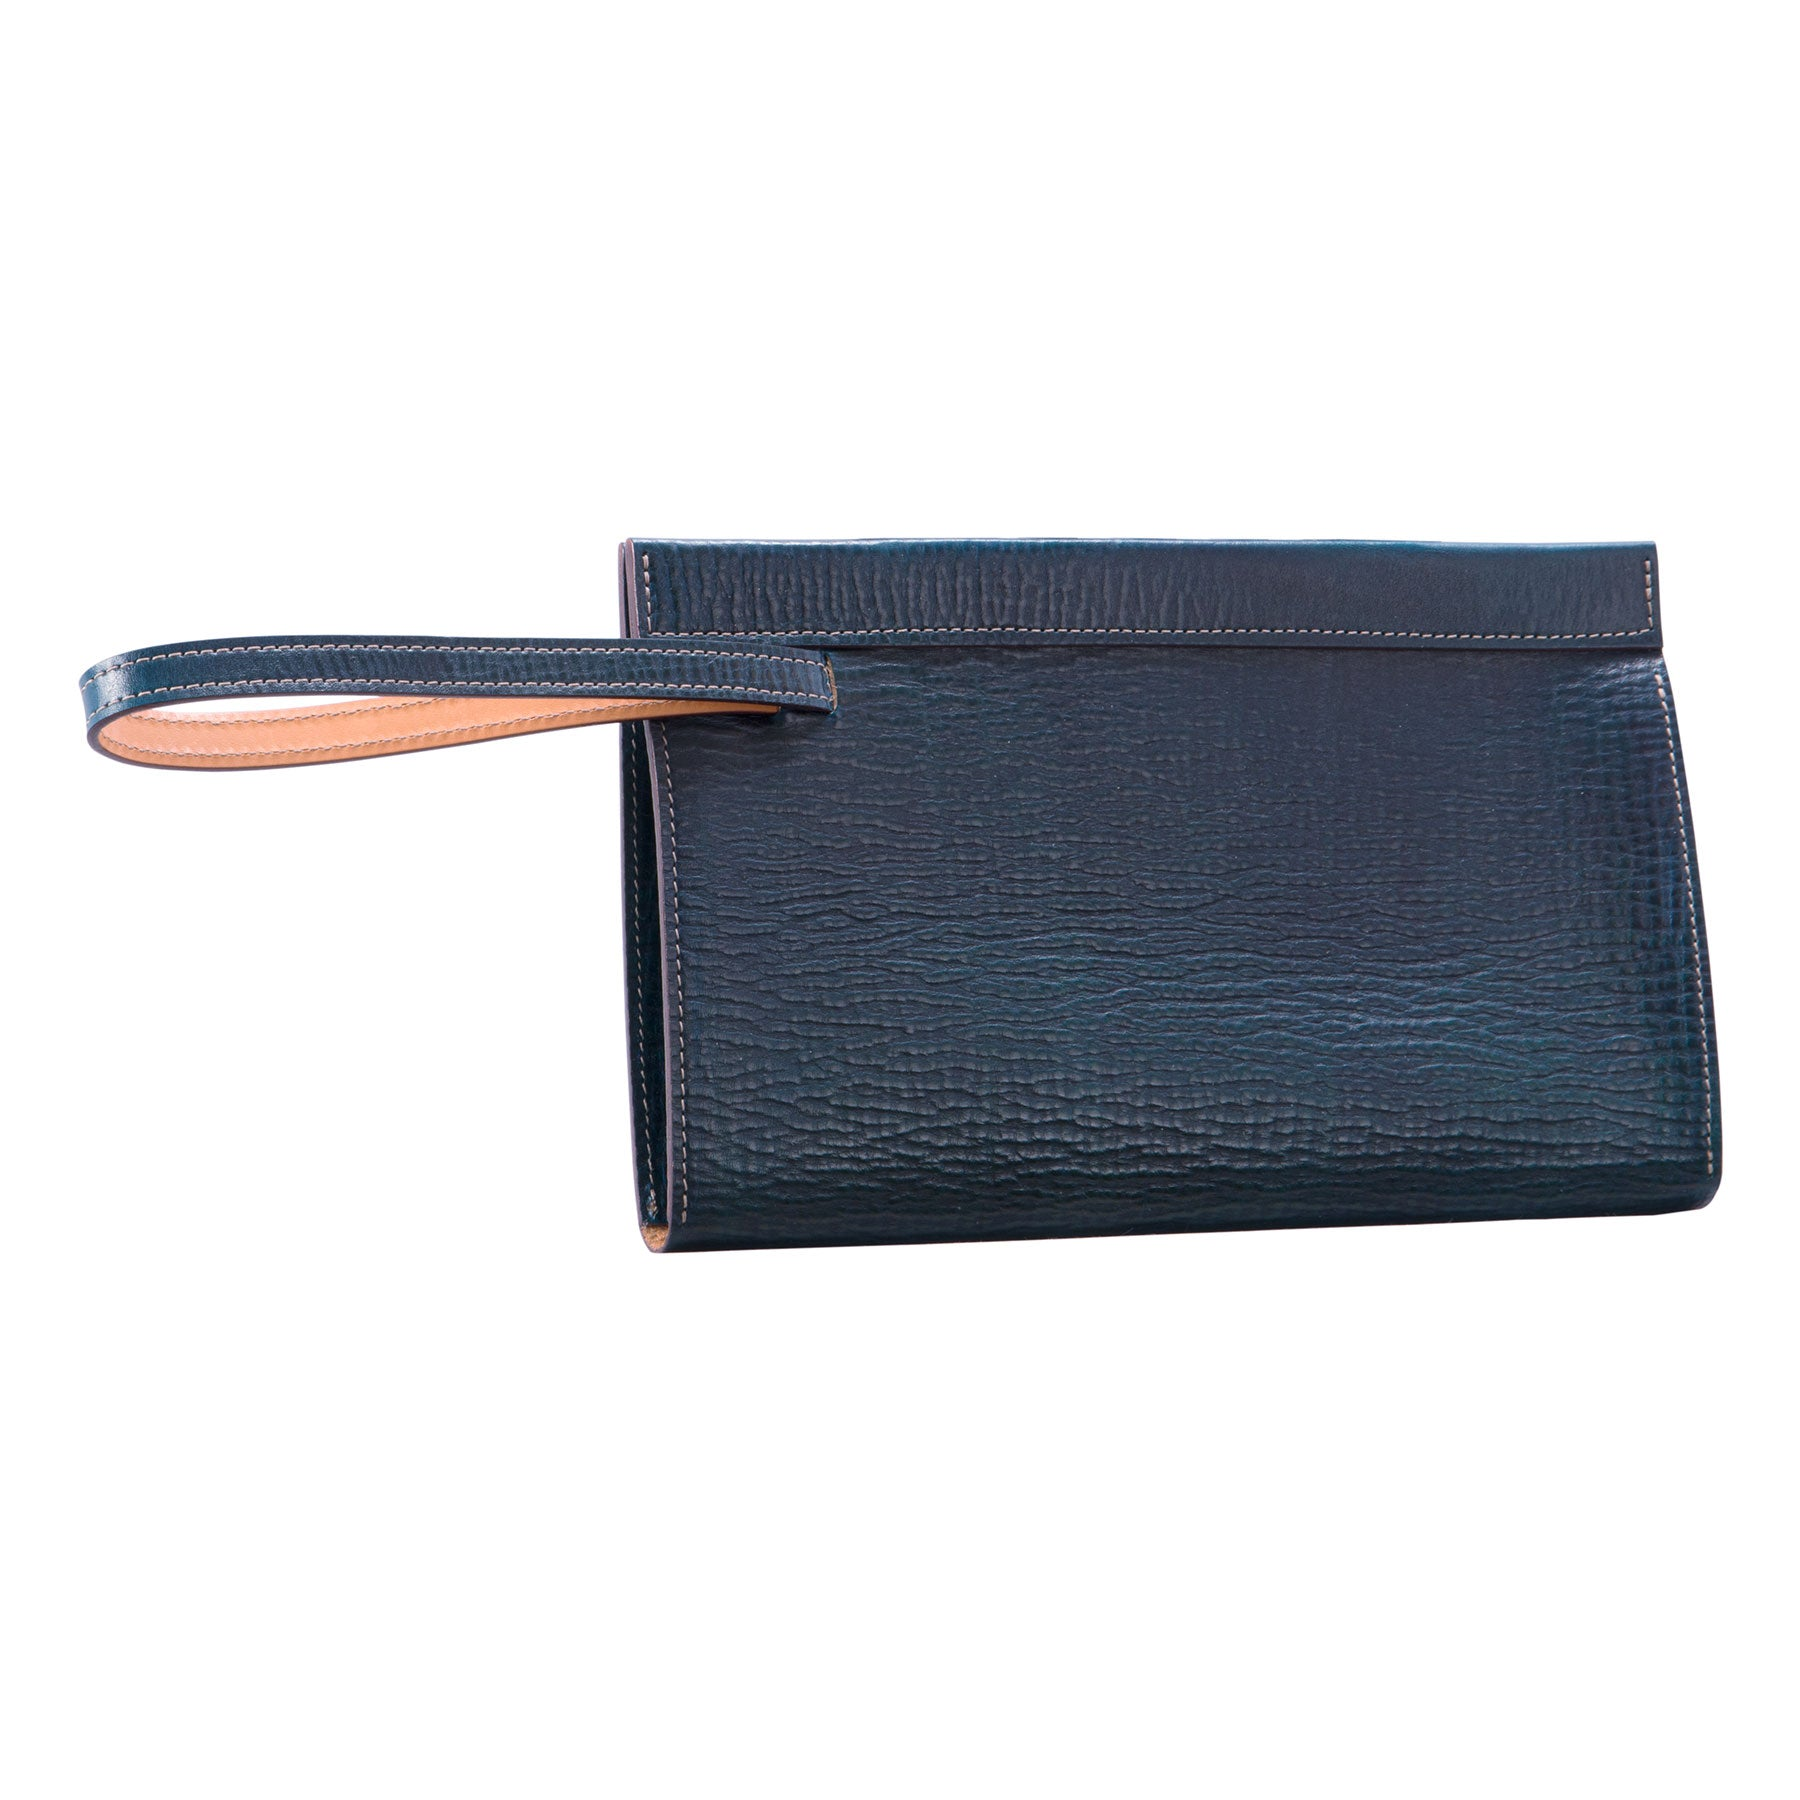 Glaser Designs Clutch Portfolio. Hand colored Blue vegetable tanned leather. Magnetic closure and retractable wrist strap. Made to-measure, custom sizes.